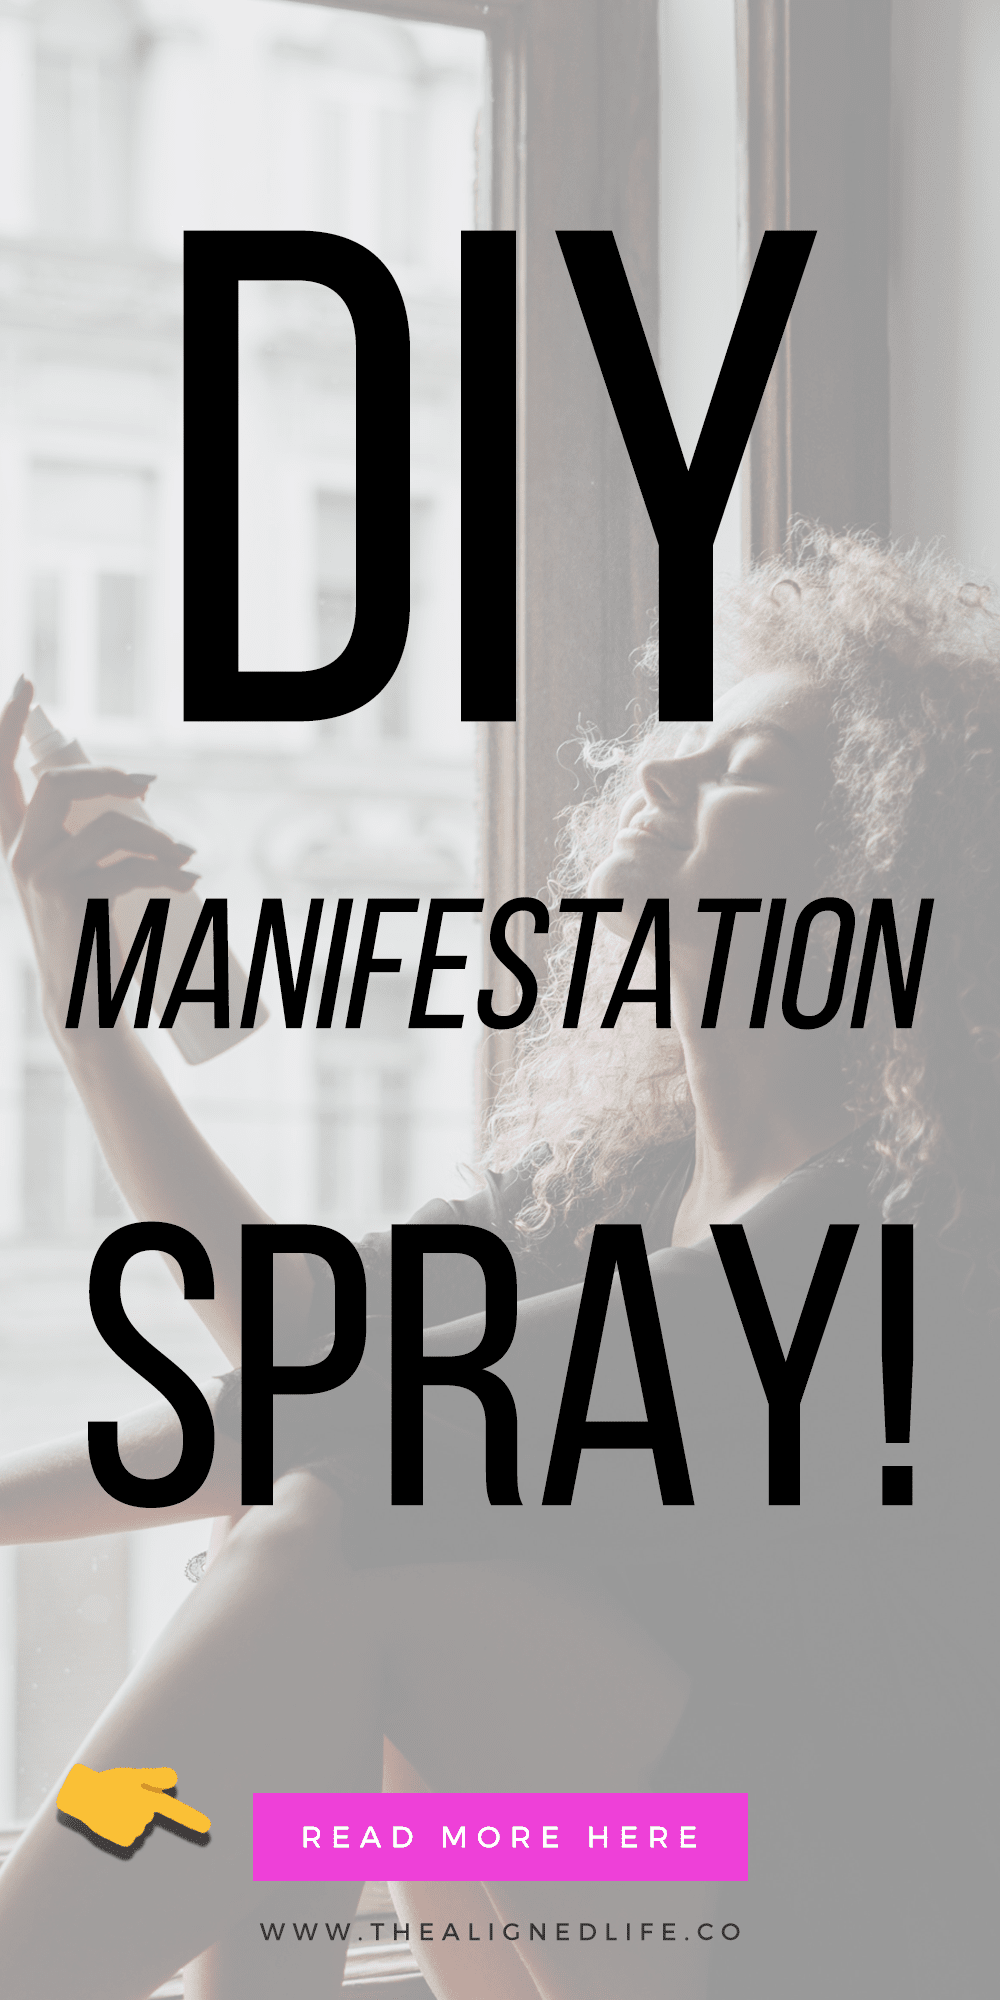 woman spraying her face with text How To Make Your Own DIY Manifestation Spray